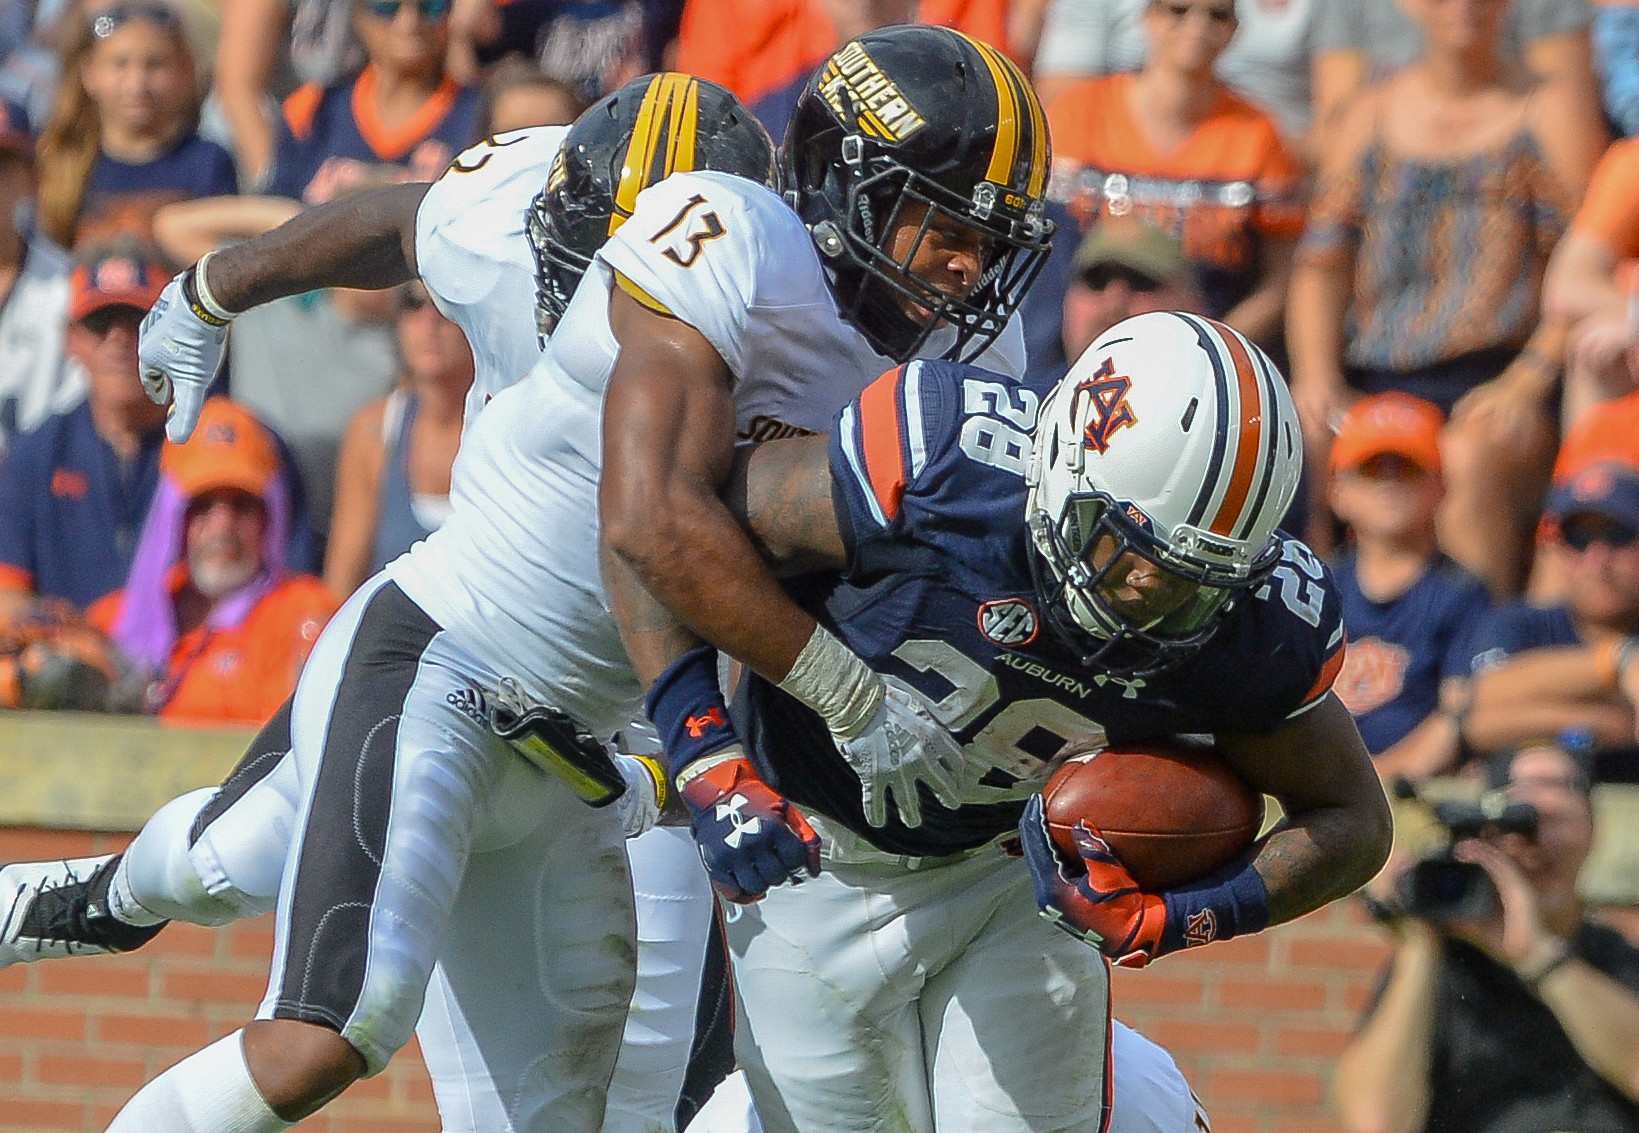 Southern Miss Golden Eagles defensive back Picasso Nelson Jr. (13) brings down Auburn Tigers running back JaTarvious Whitlow (28) during the first half of Saturday's game, at Jordan Hare Stadium in Auburn AL. Daily Mountain Eagle -  Jeff Johnsey